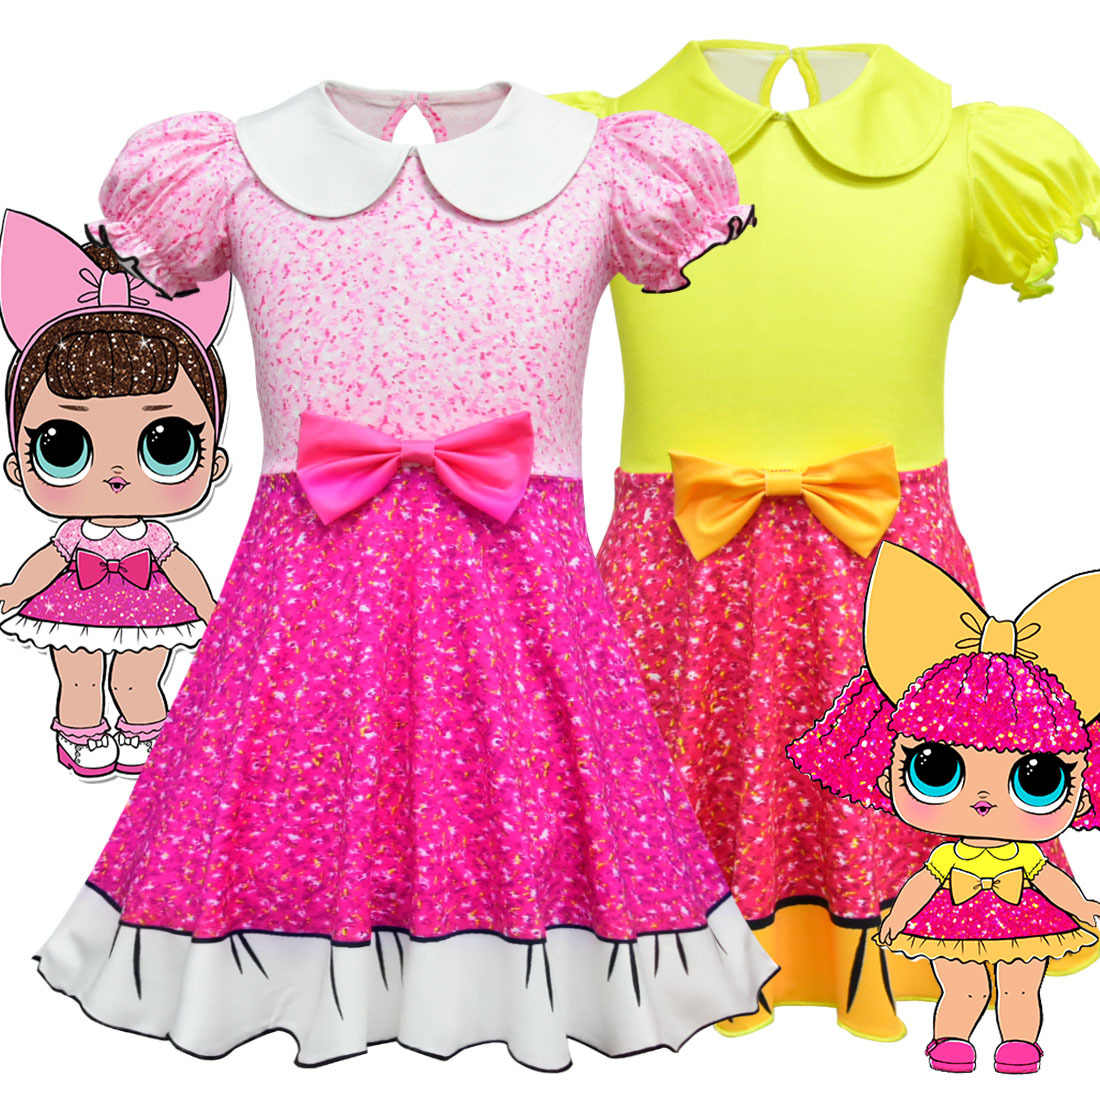 095c9cde89 3-10Y Baby Dresses 2018 Summer cosplay Dress Kids Party Christmas Costumes  Children Clothes Princess